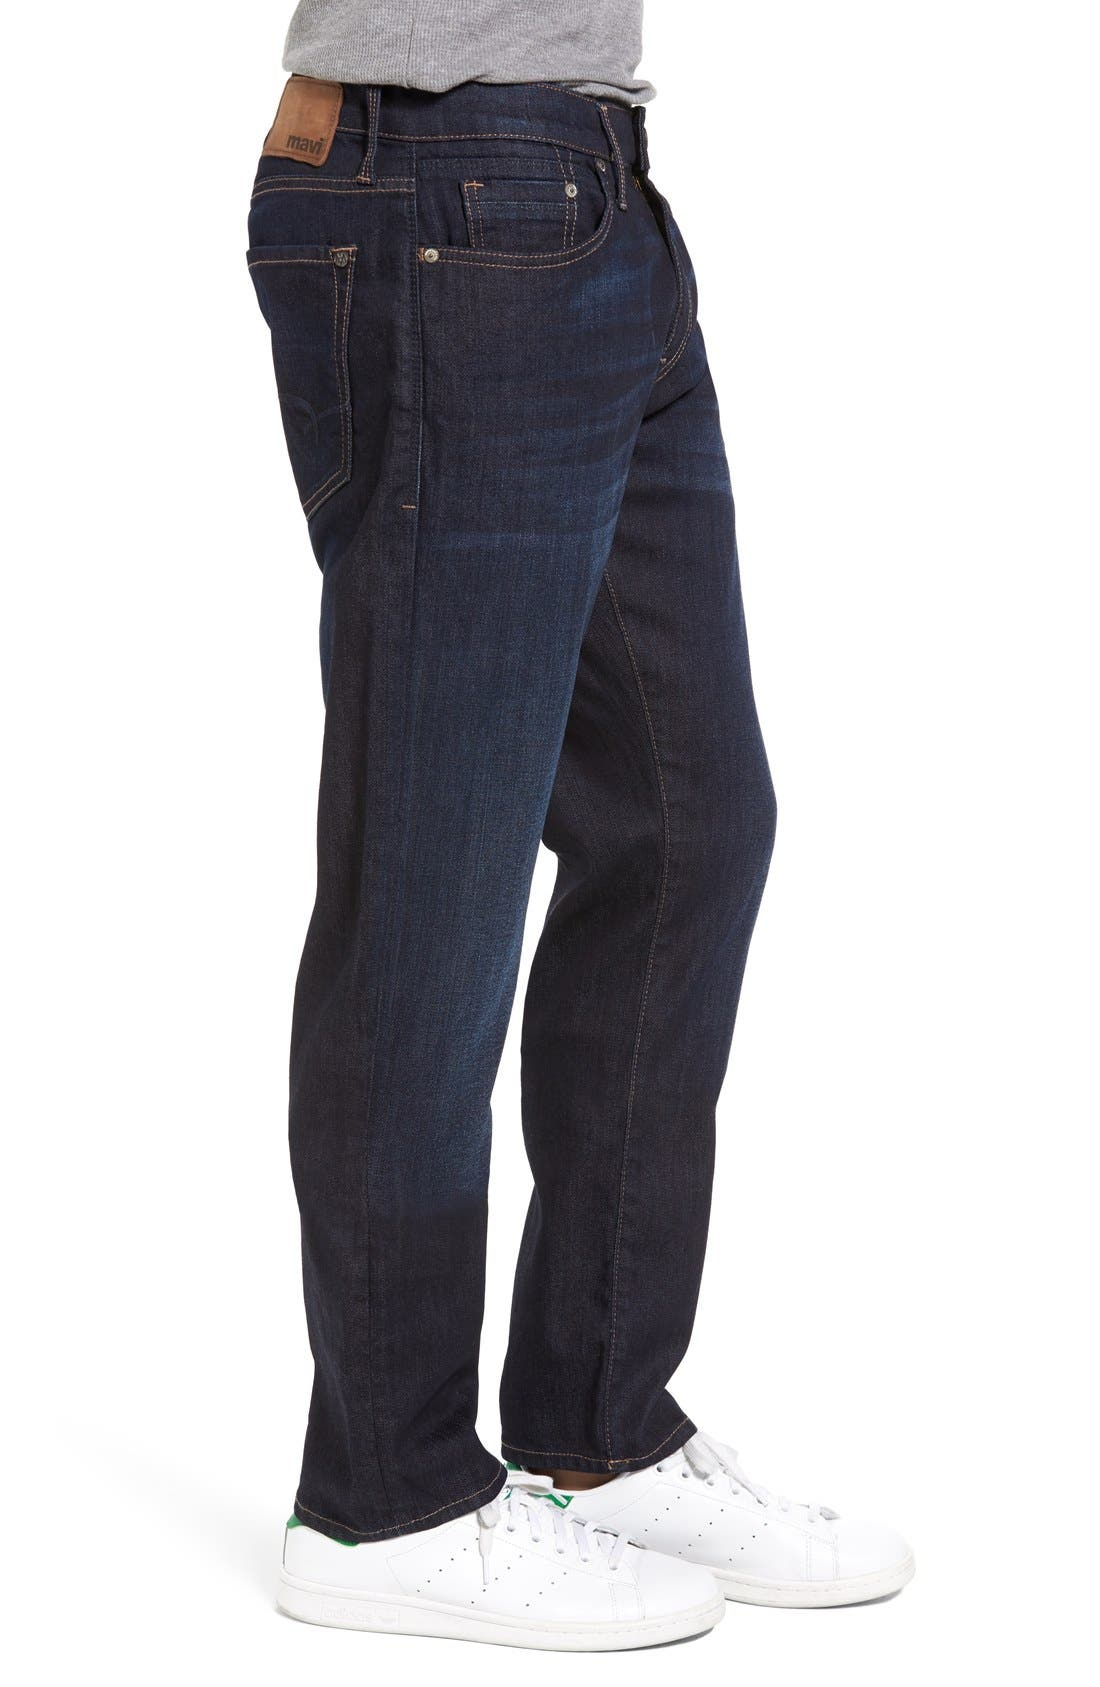 Marcus Slim Straight Leg Jeans,                             Alternate thumbnail 5, color,                             RINSE BRUSHED WILLIAMSBURG